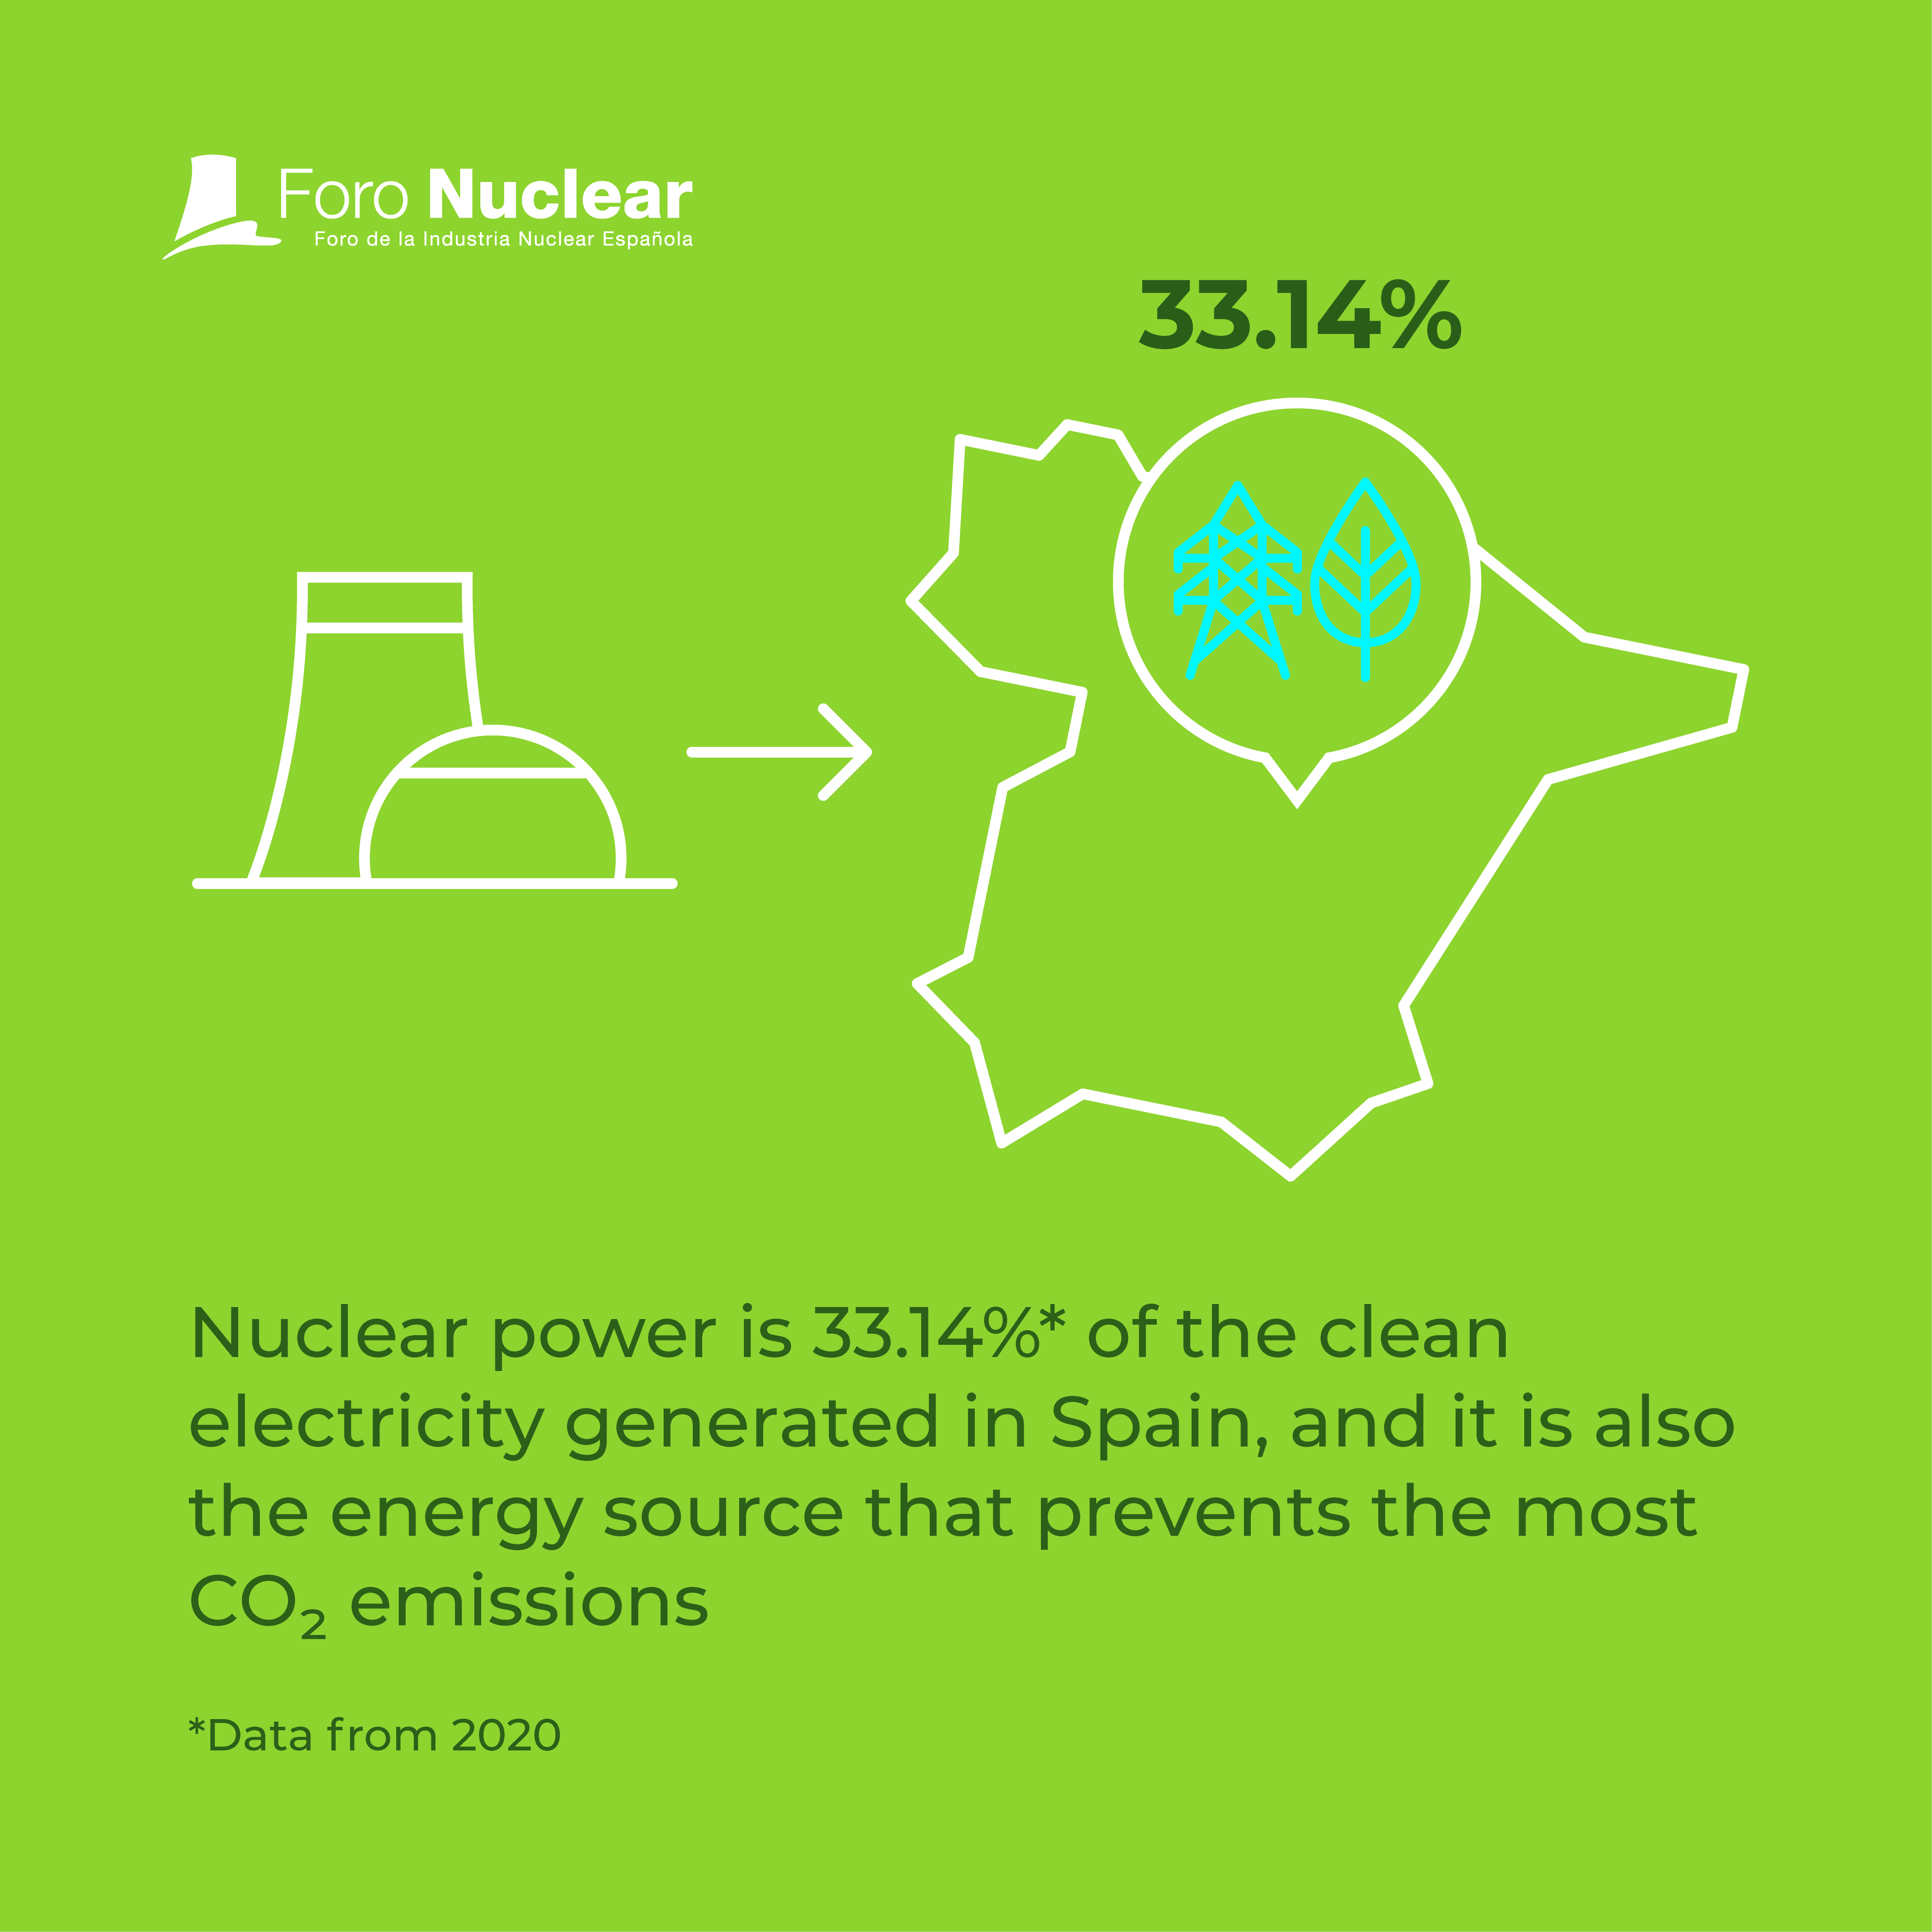 Nuclear power, clean electricity